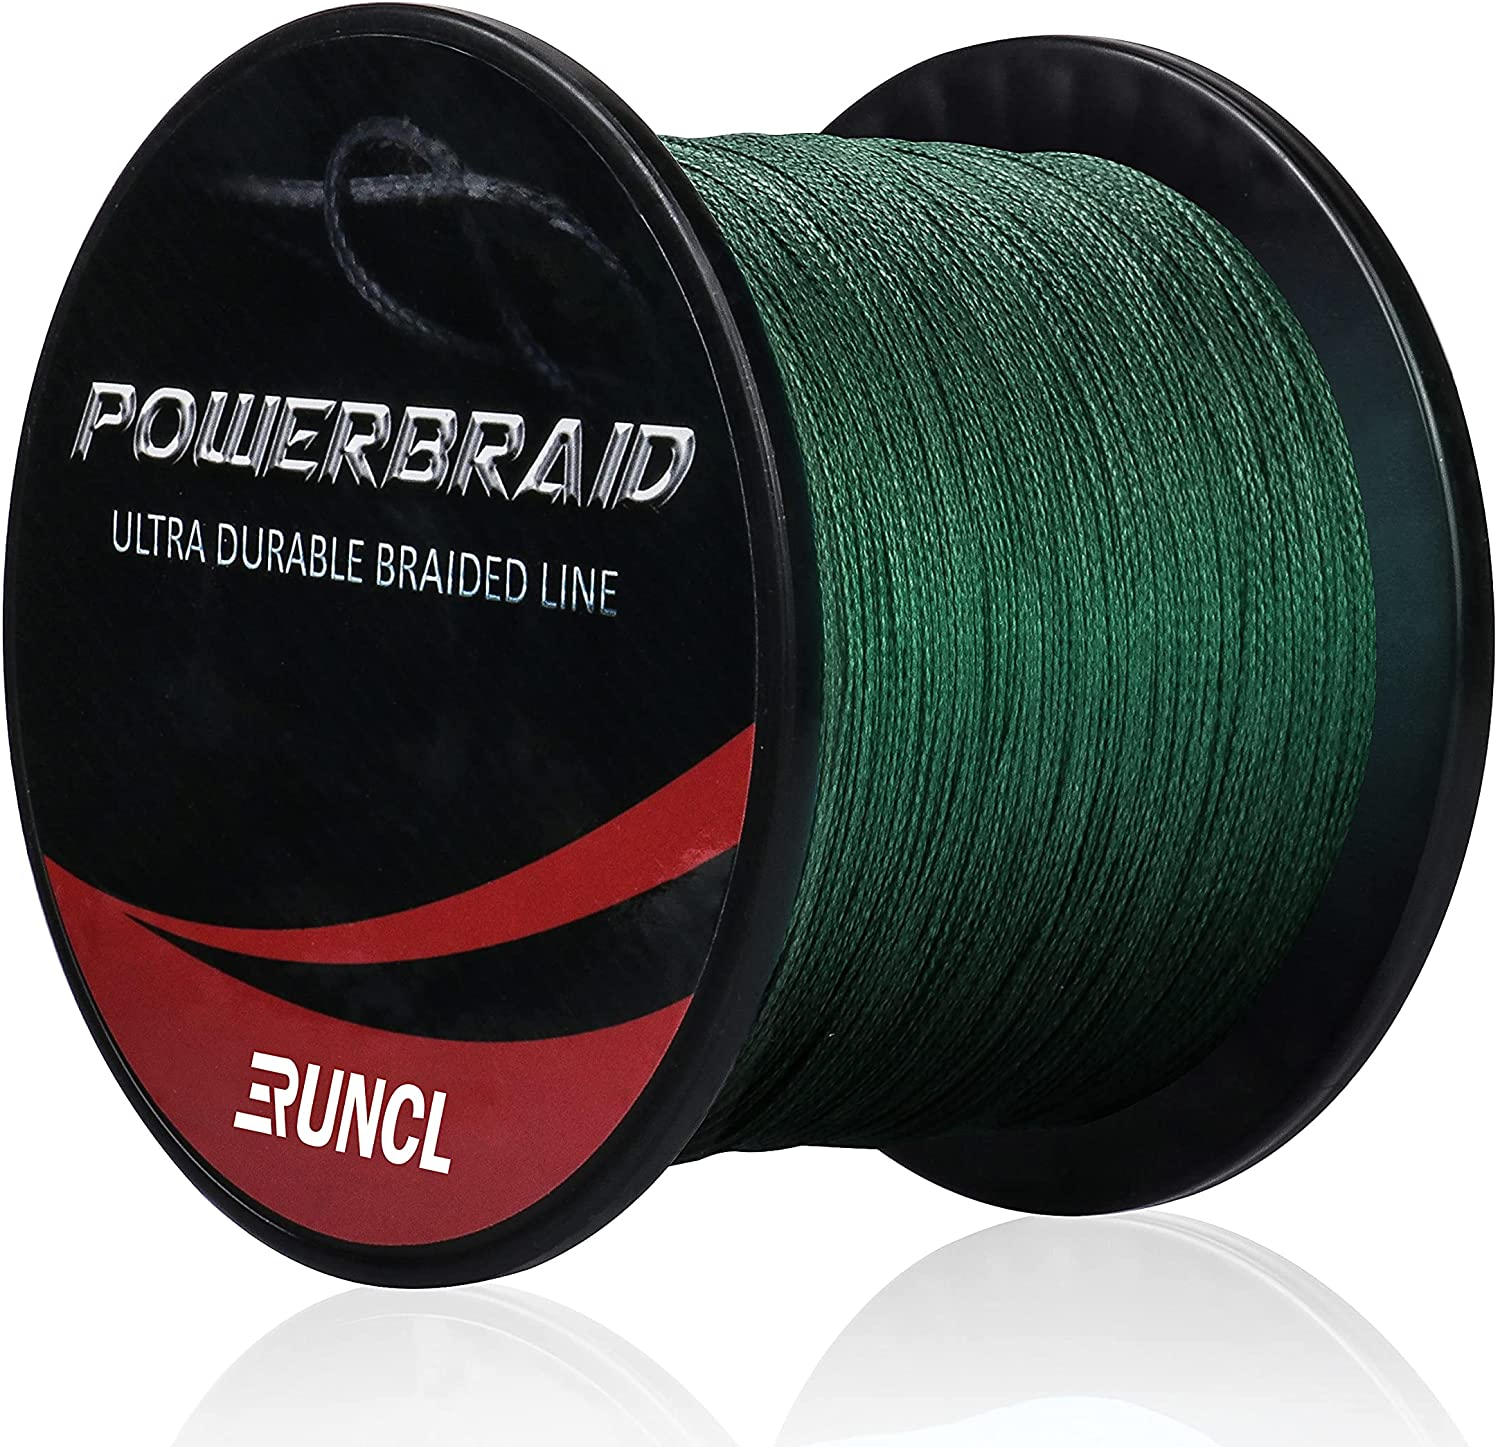 RUNCL PowerBraid Fishing Classic Line 4 Braided 9 Strands Clearance SALE! Limited time! Lin 8